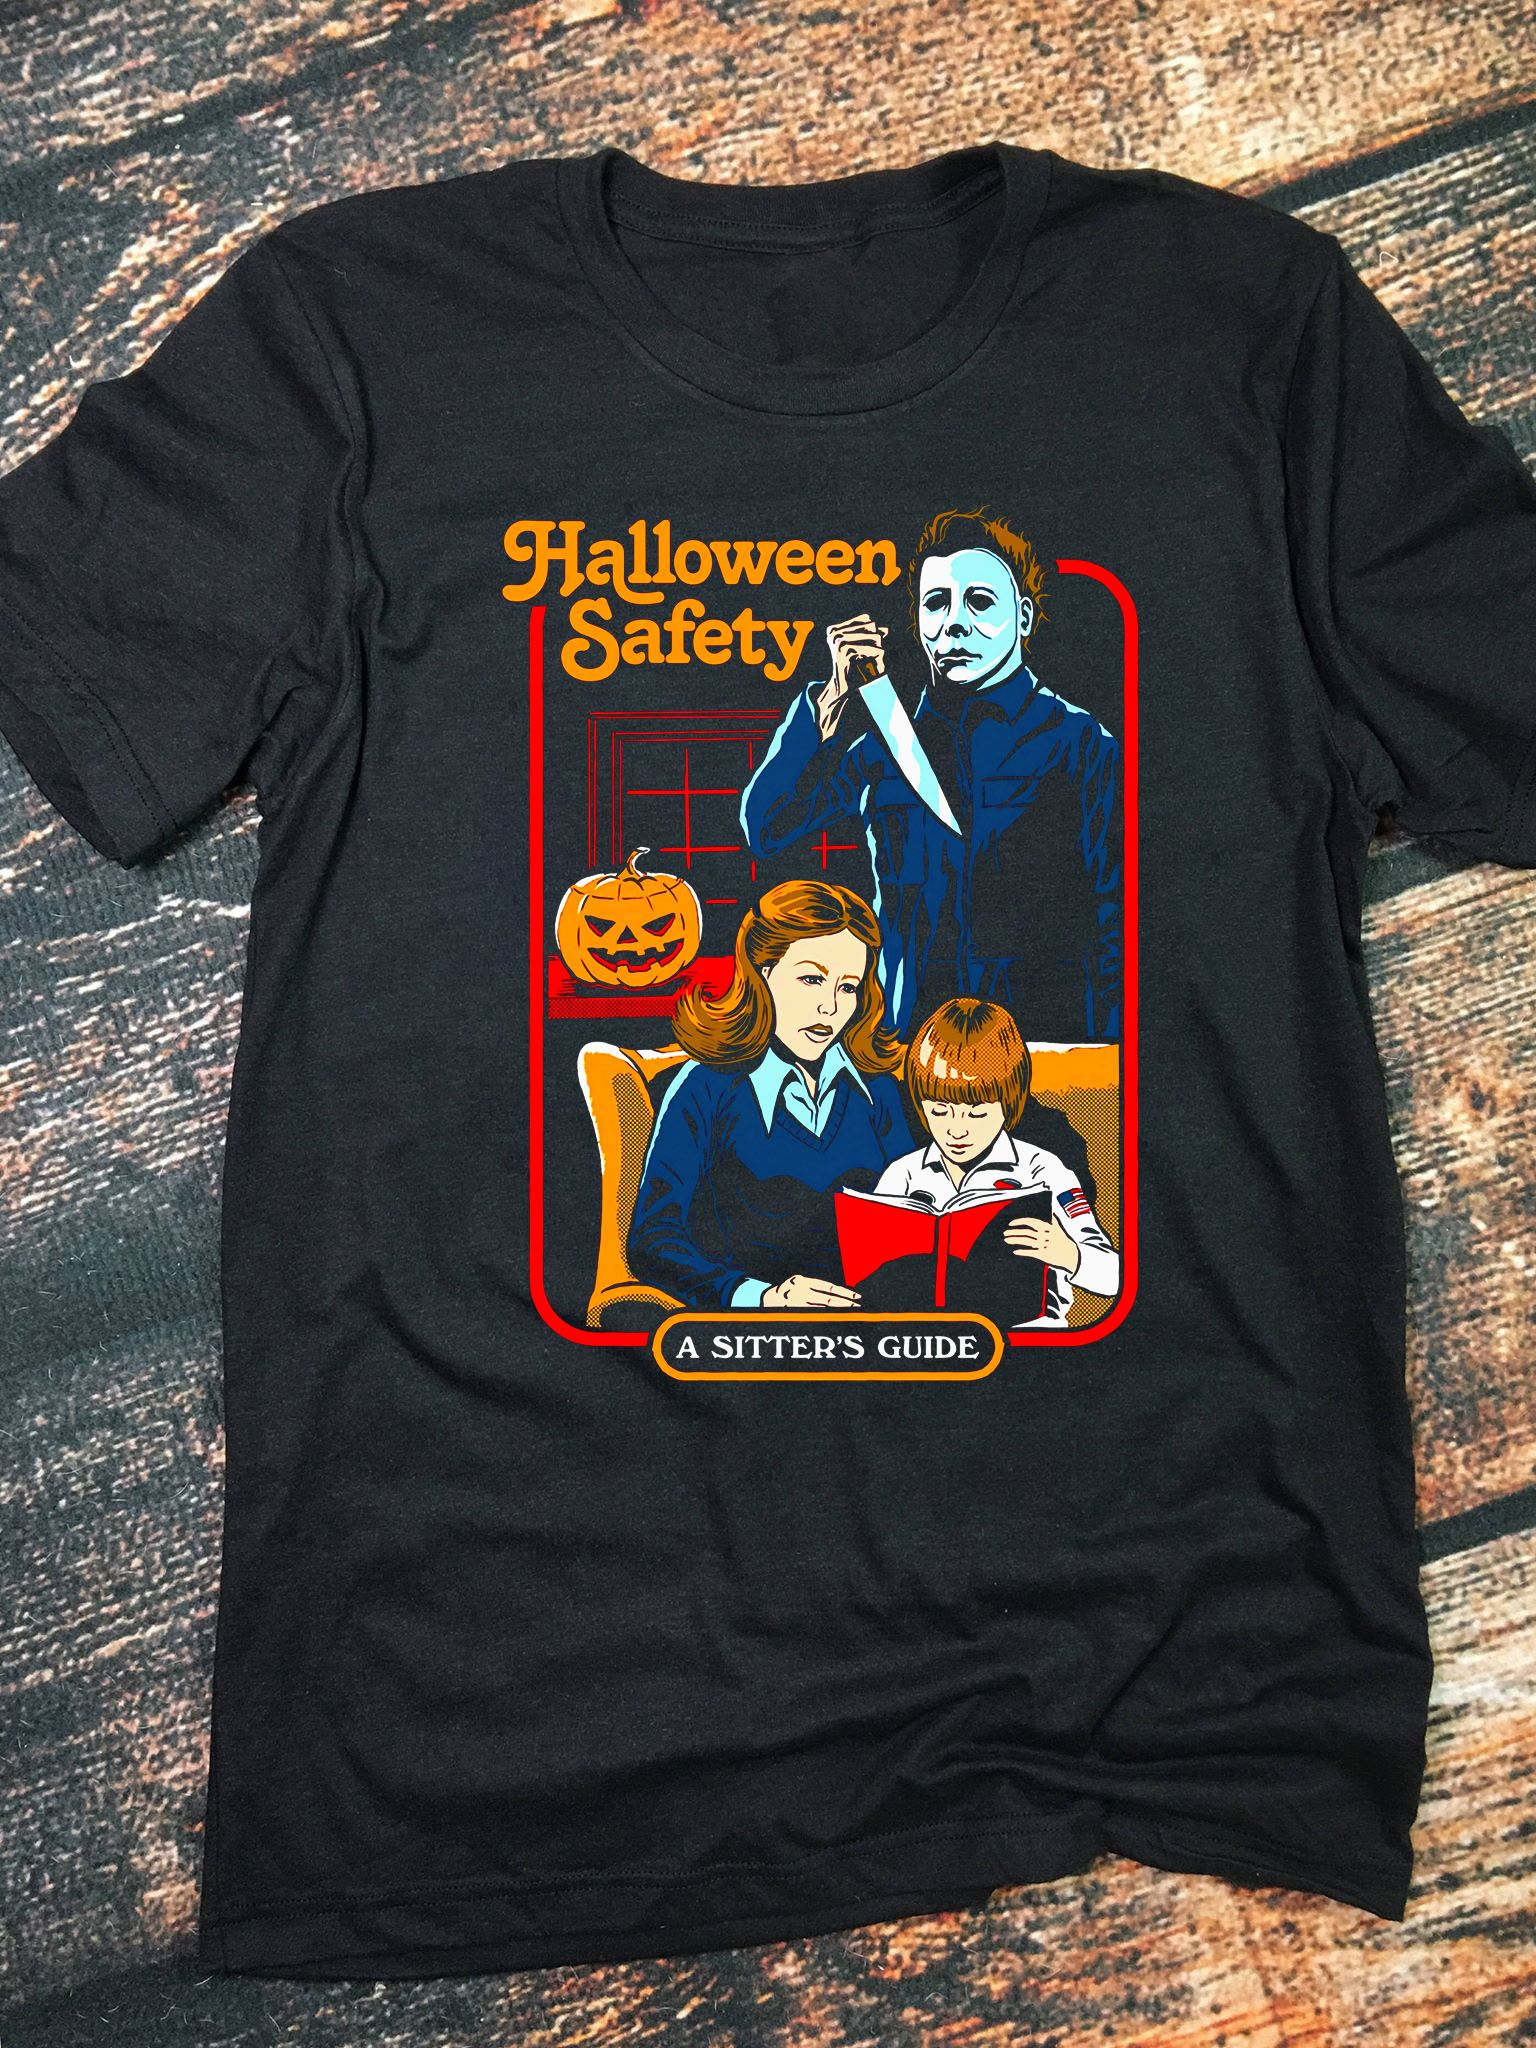 Michael Myers Halloween Safety A Sitter's Guide Women's T